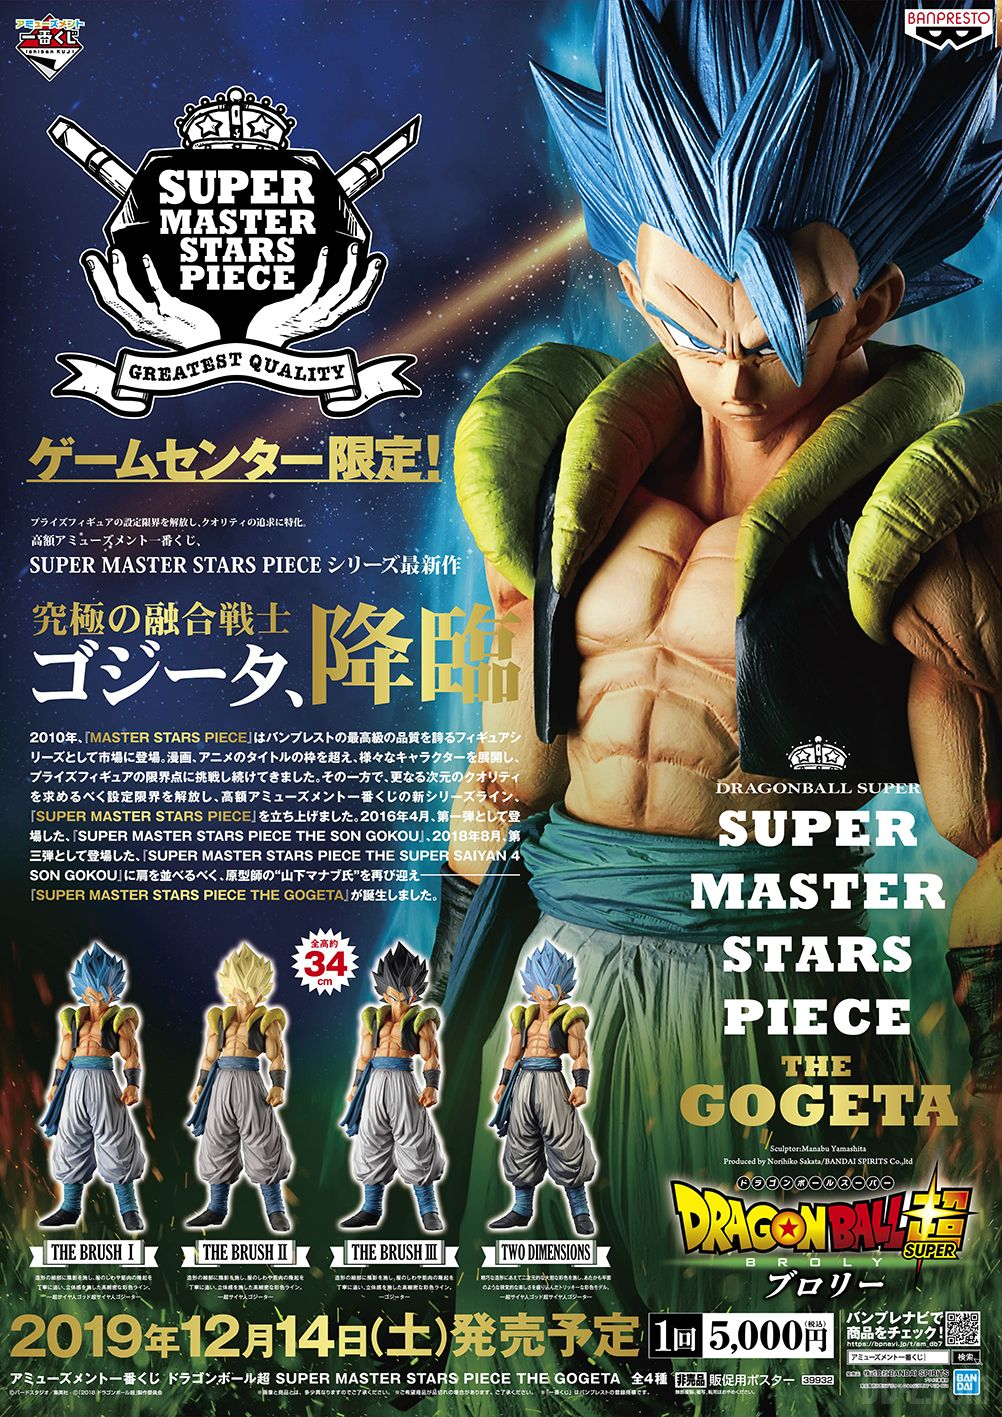 Super Master Stars Piece The Gogeta